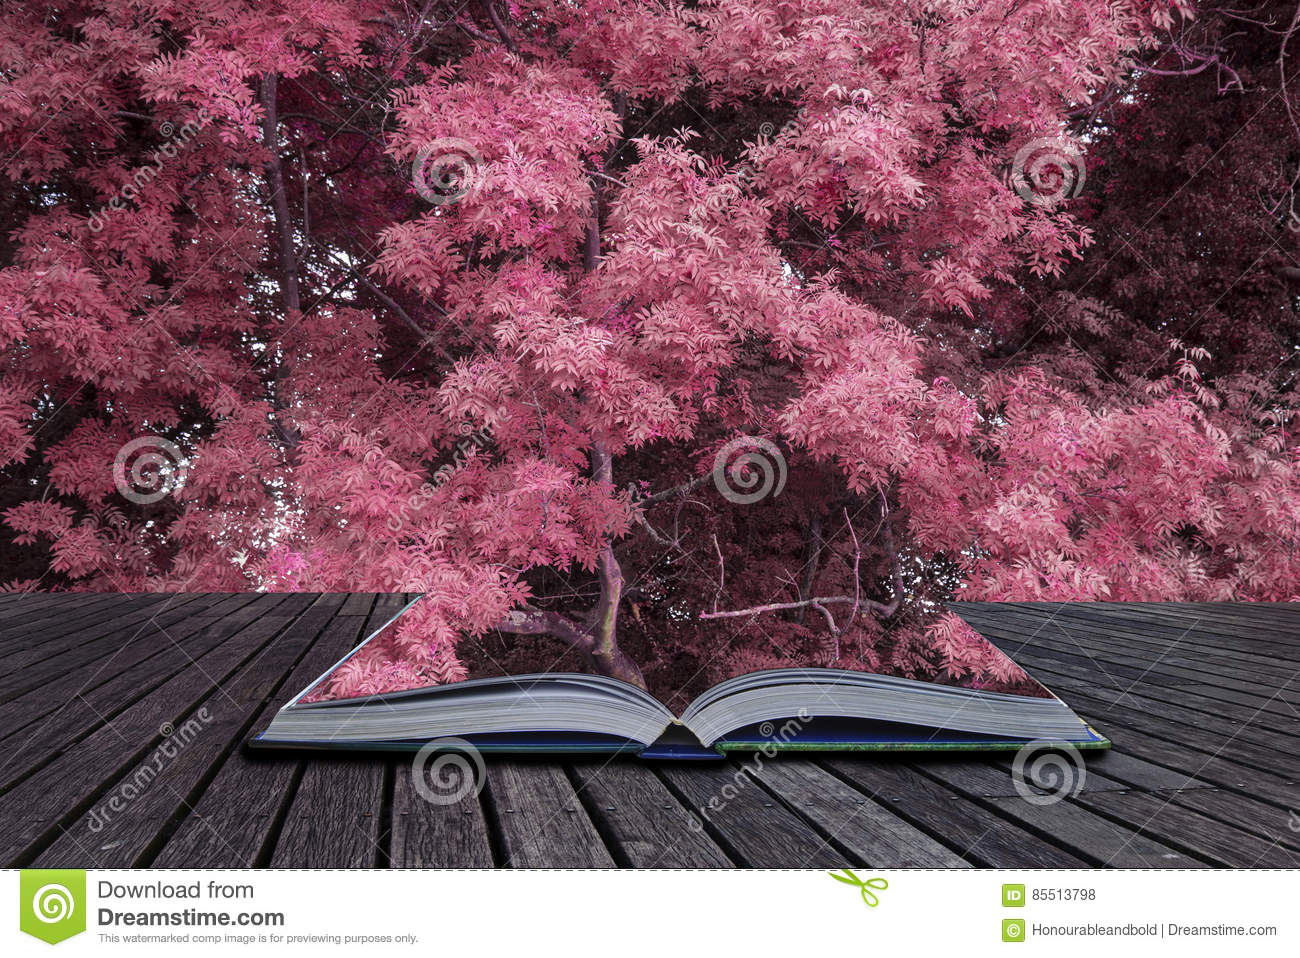 Stunning alternate vibrant colorful forest landscape tree conceptual image coming out of pages of book